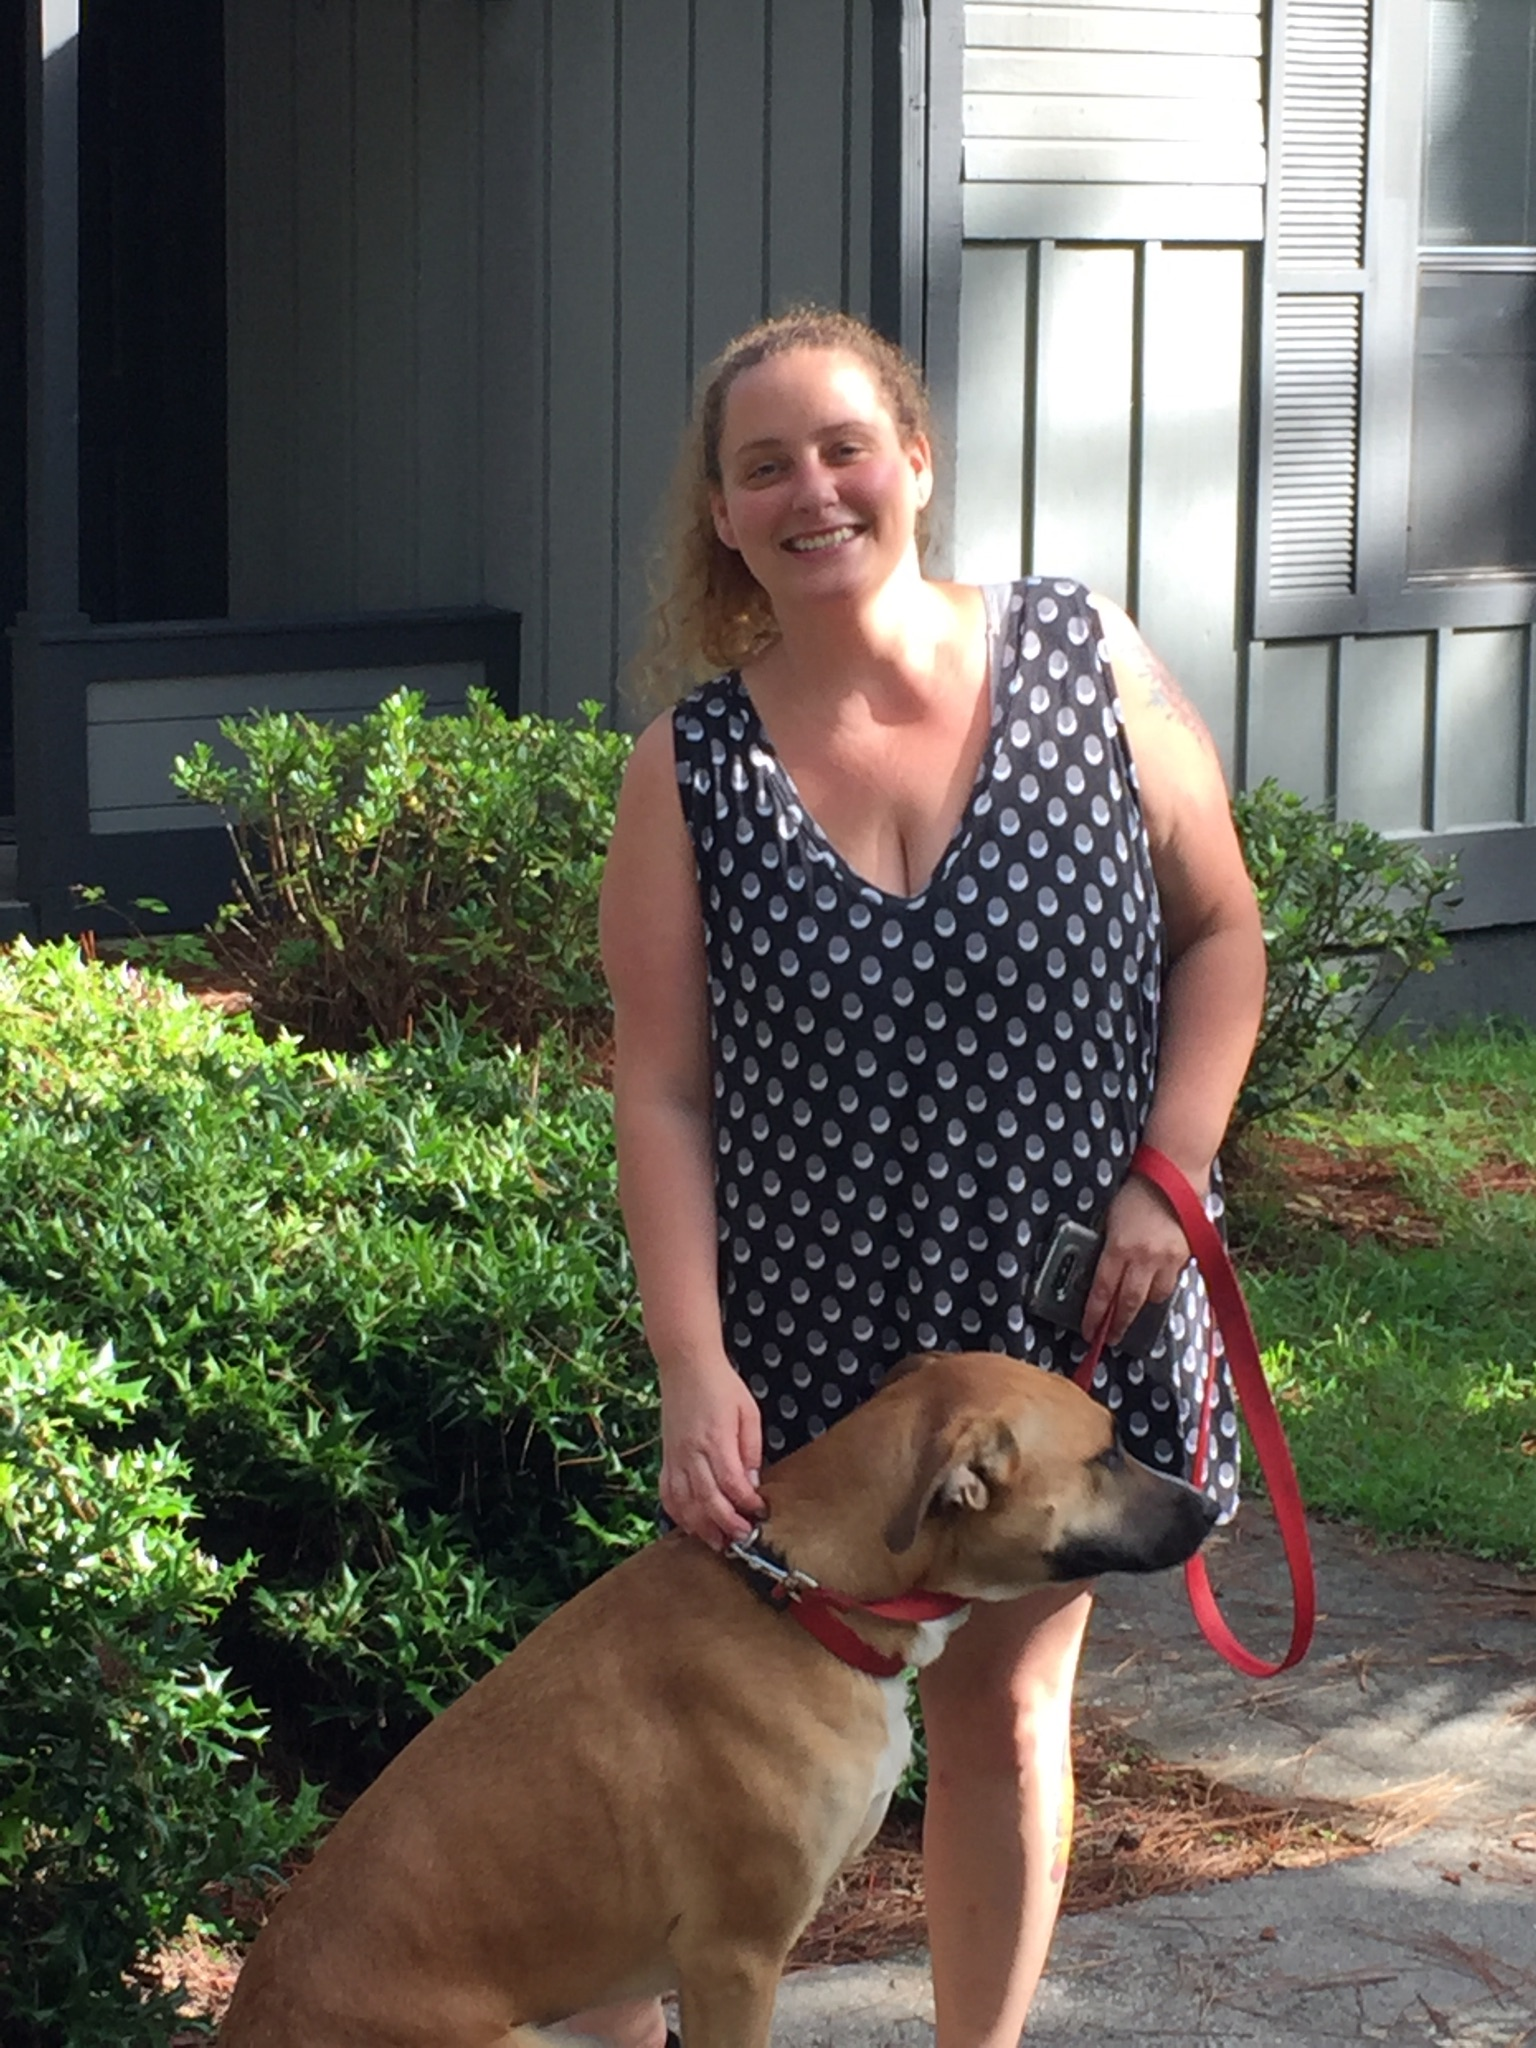 Here are Terra King and her Labrador Retriever, Thor.  She also transported Jack & Sally (tortoises) with us from CA to FL. Looks like another happy reunion!